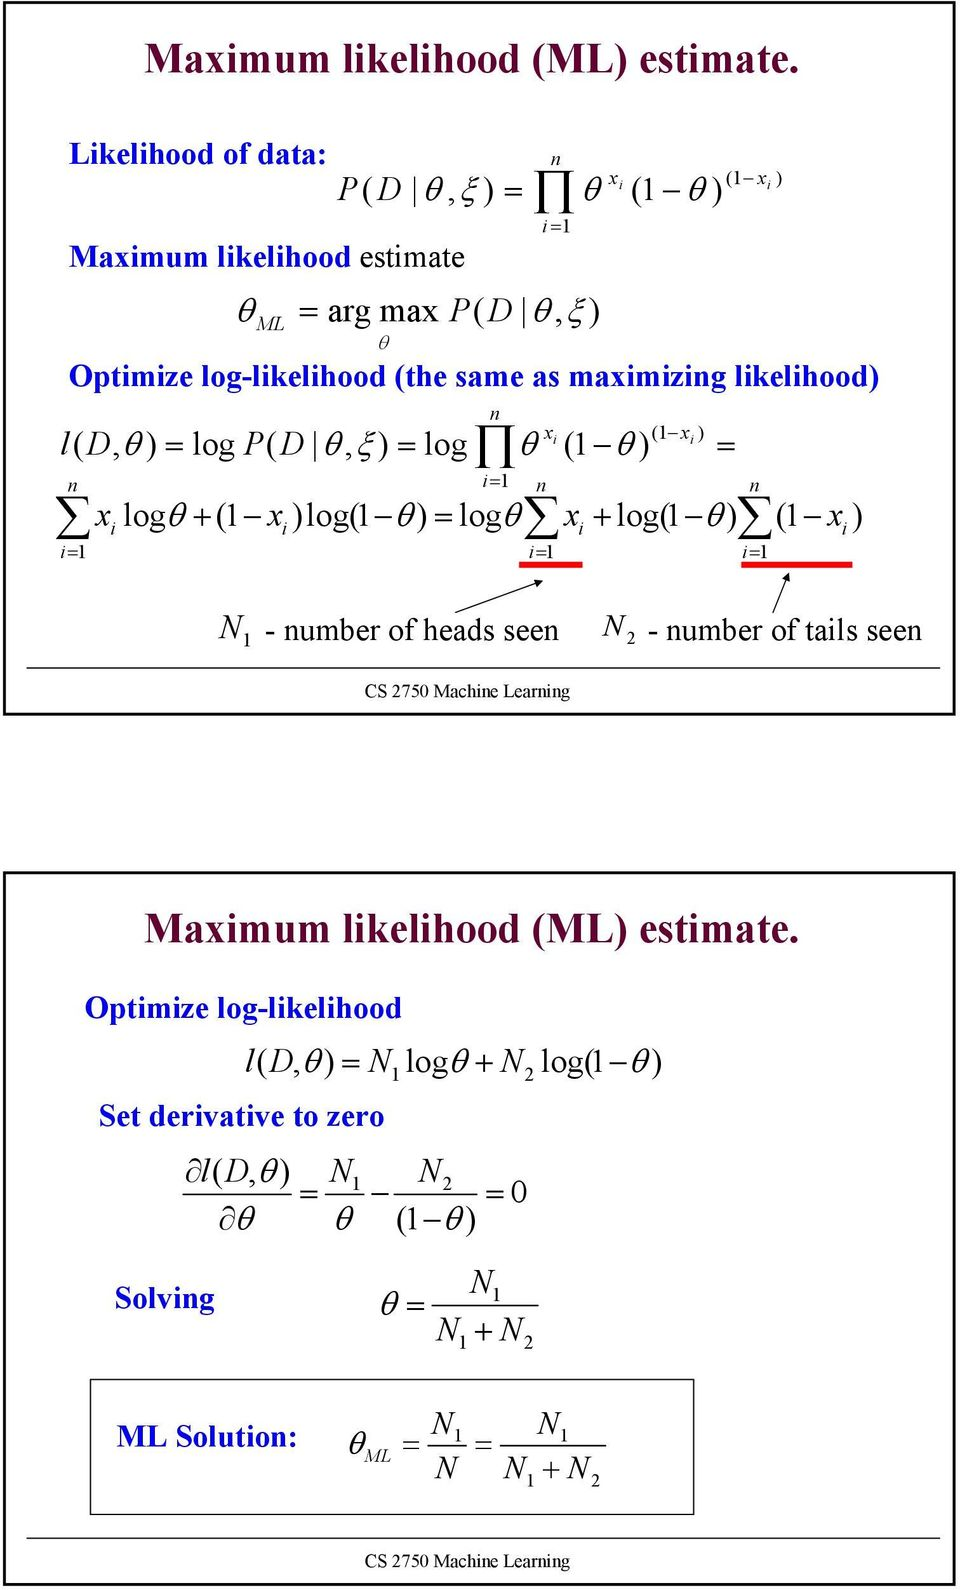 of tals seen (1 x Optmze log-lkelhood (the same as maxmzng lkelhood = 1 n x (1 x l( D, = log P( D, ξ = log (1 n = 1 x log +